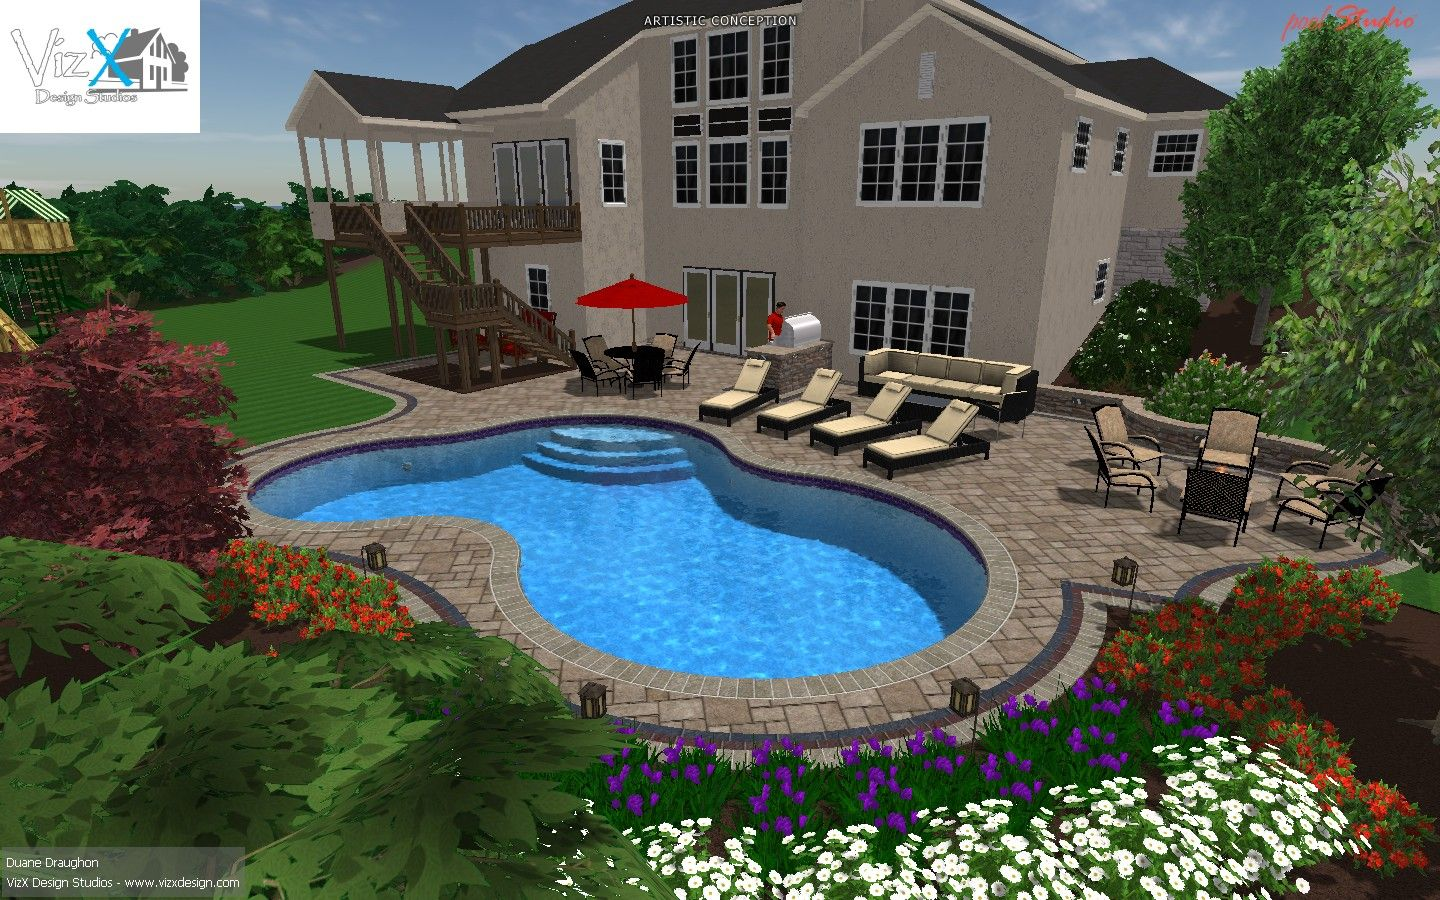 Salt Water 3D Gunite Pool Design W/Outdoor Living Space.